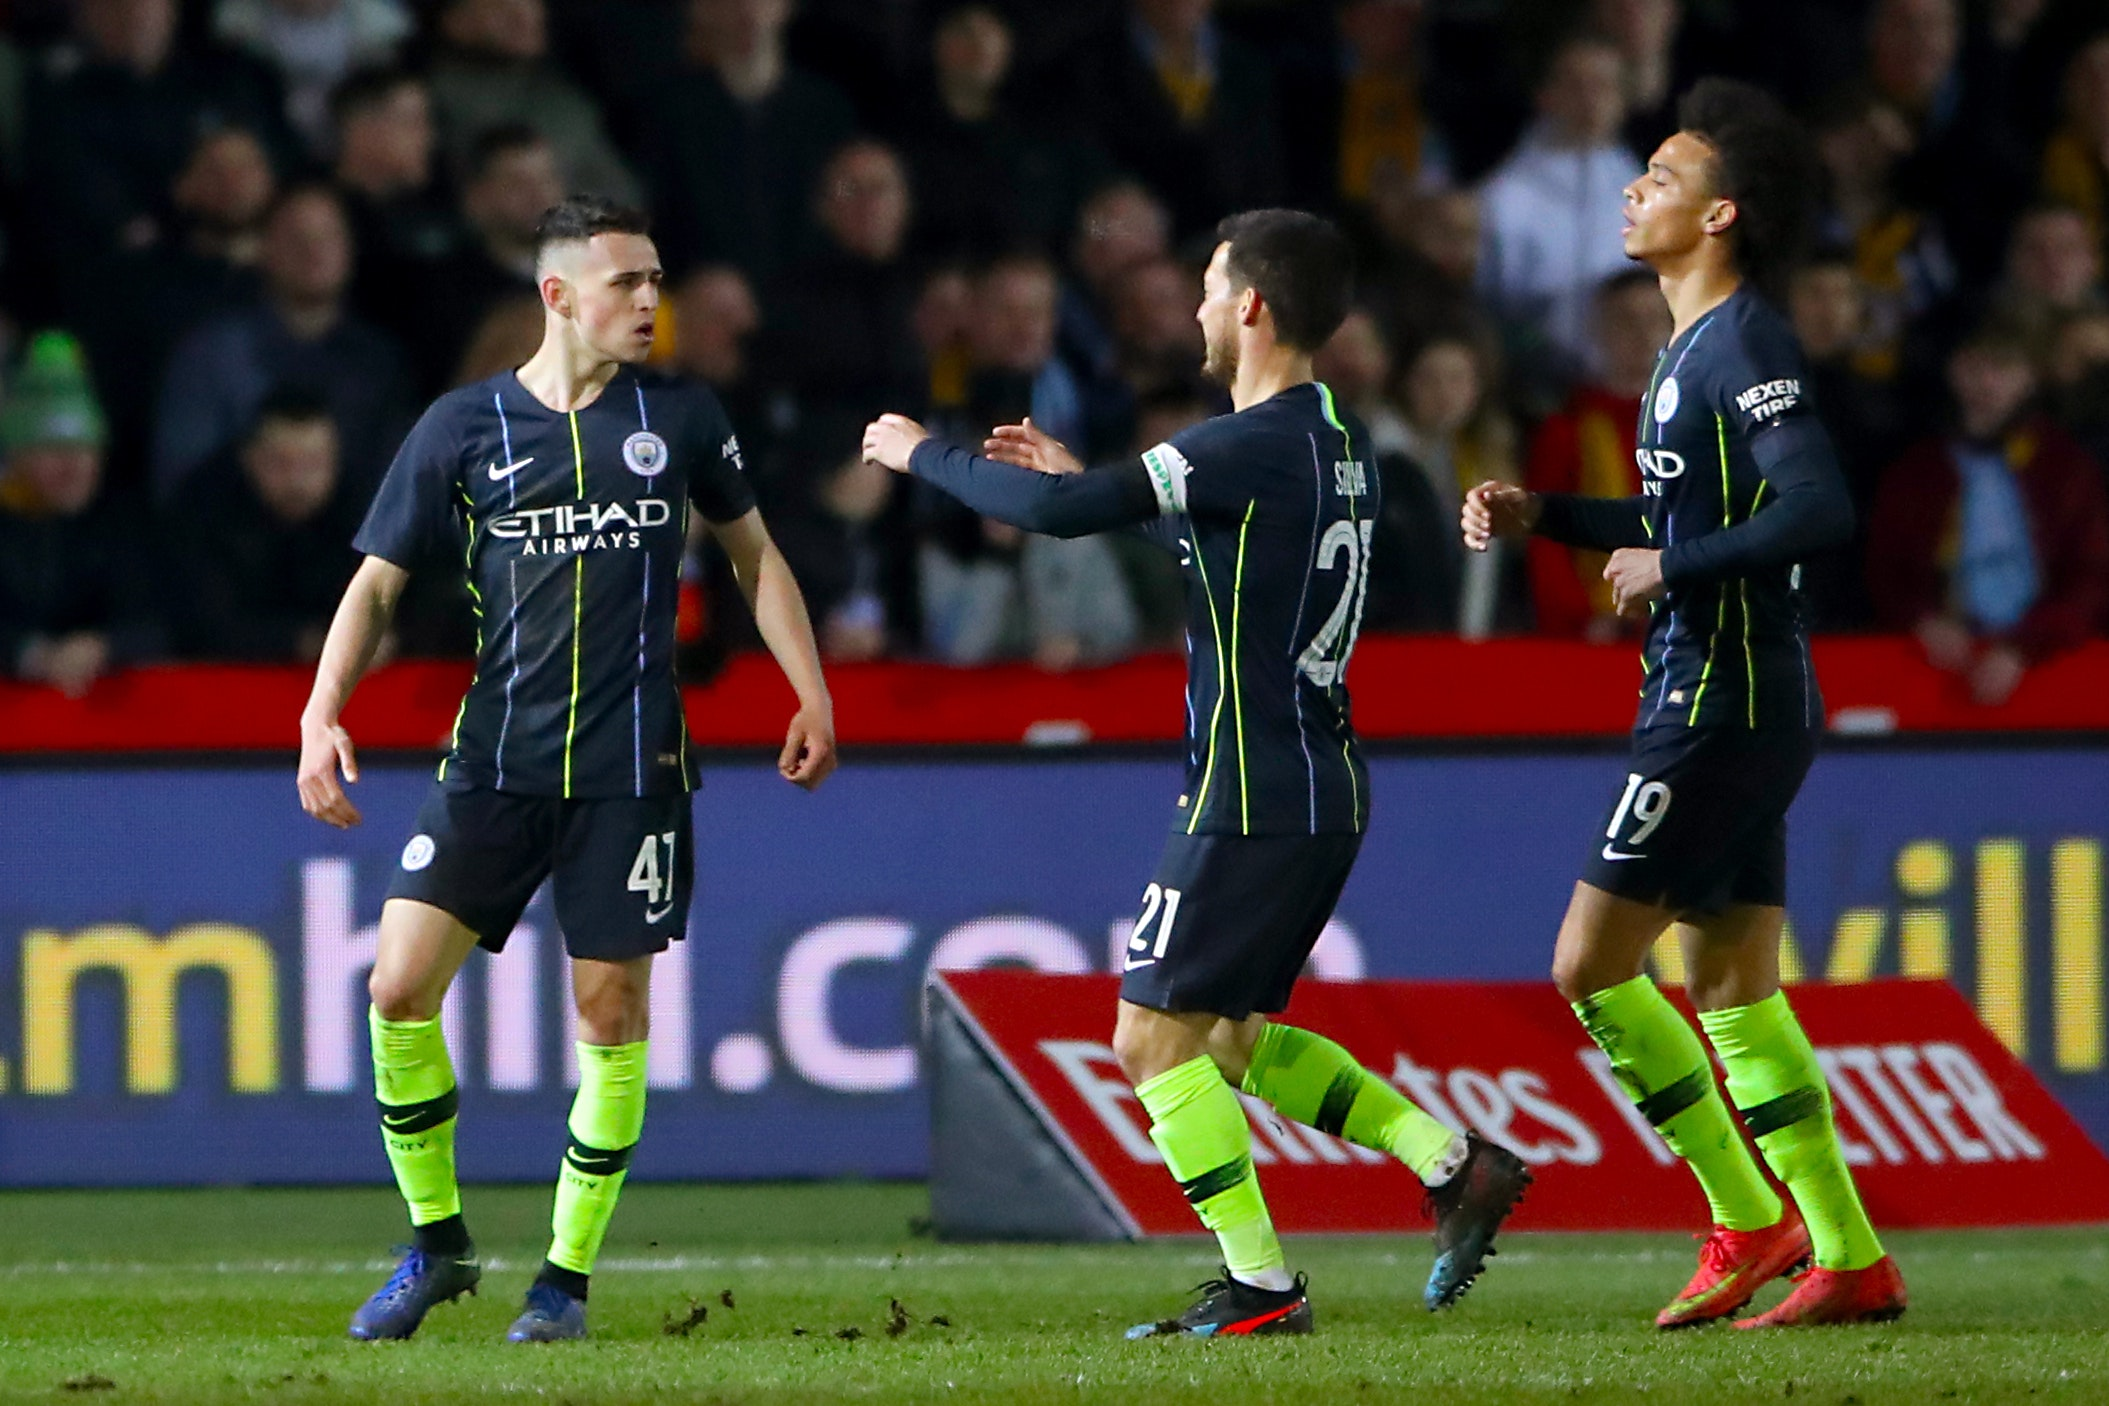 Manchester City's Phil Foden (left) celebrates scoring his side's second goal in their FA Cup win at Newport